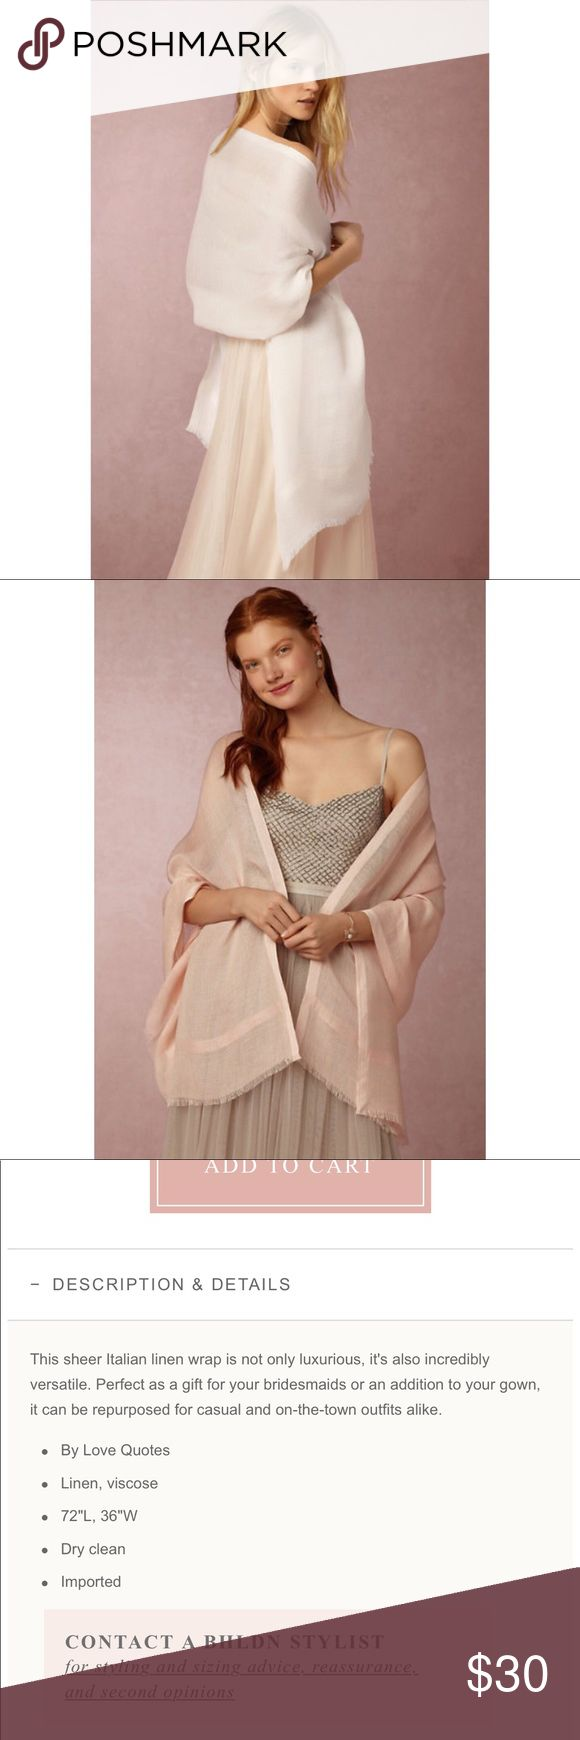 🆕 Anthro Linen Shawl From BHLDN, Anthropologie's wedding label, the brand is Love Quotes. New with tags - I bought this for use as a bridesmaid and never wore it. Beautiful cream color (the pic of the pink version is just to show the pattern better). Anthropologie Accessories Scarves & Wraps